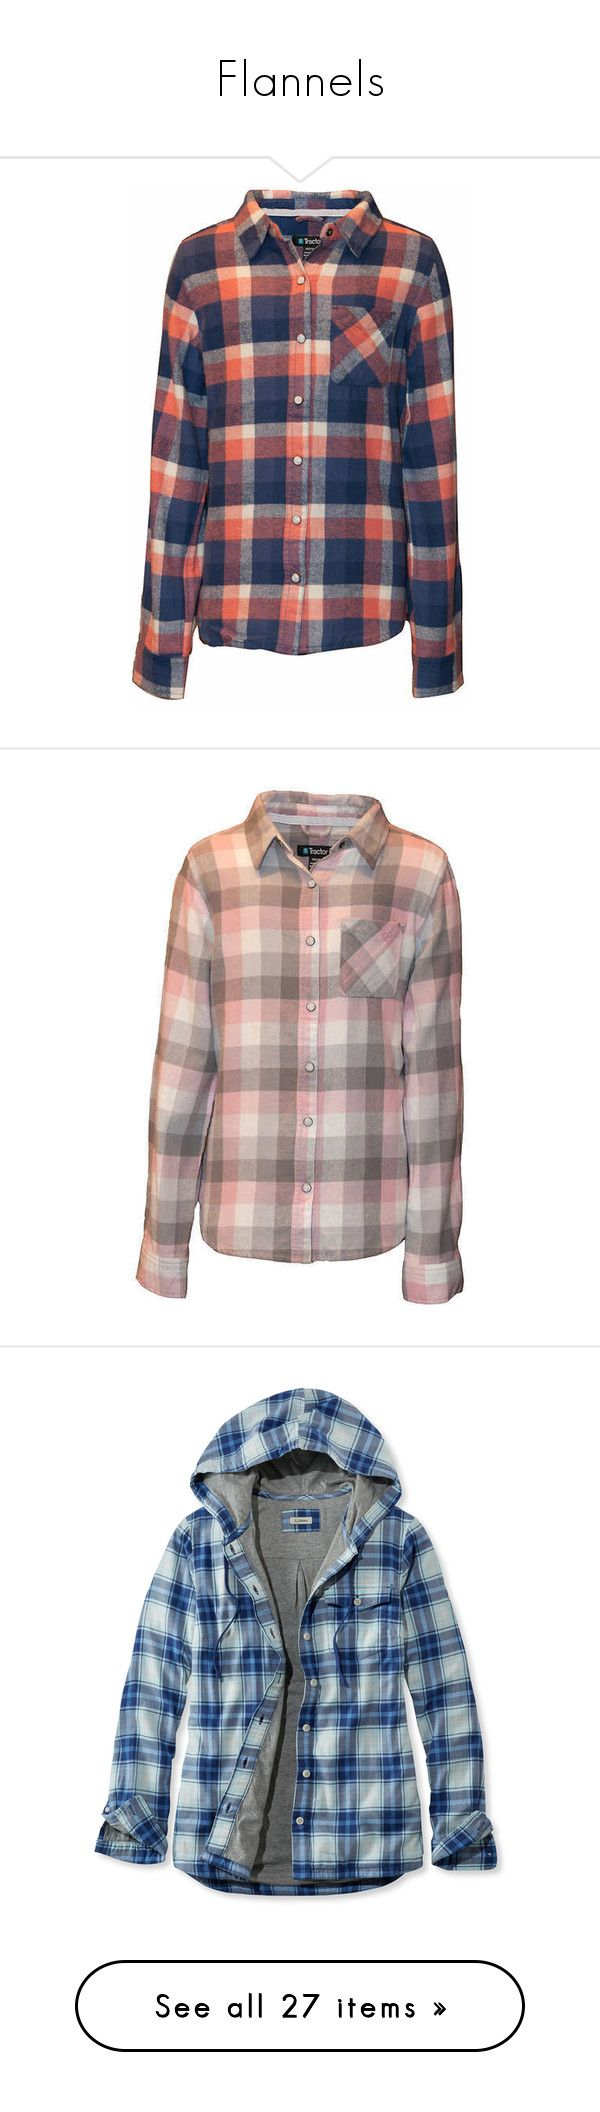 """Flannels"" by kansascountrygirl ❤ liked on Polyvore featuring tops, hoodies, outerwear, flannel shirt, flannel hoodie, hooded flannel shirt, blue flannel shirts, hooded plaid shirt, men's fashion and men's clothing"